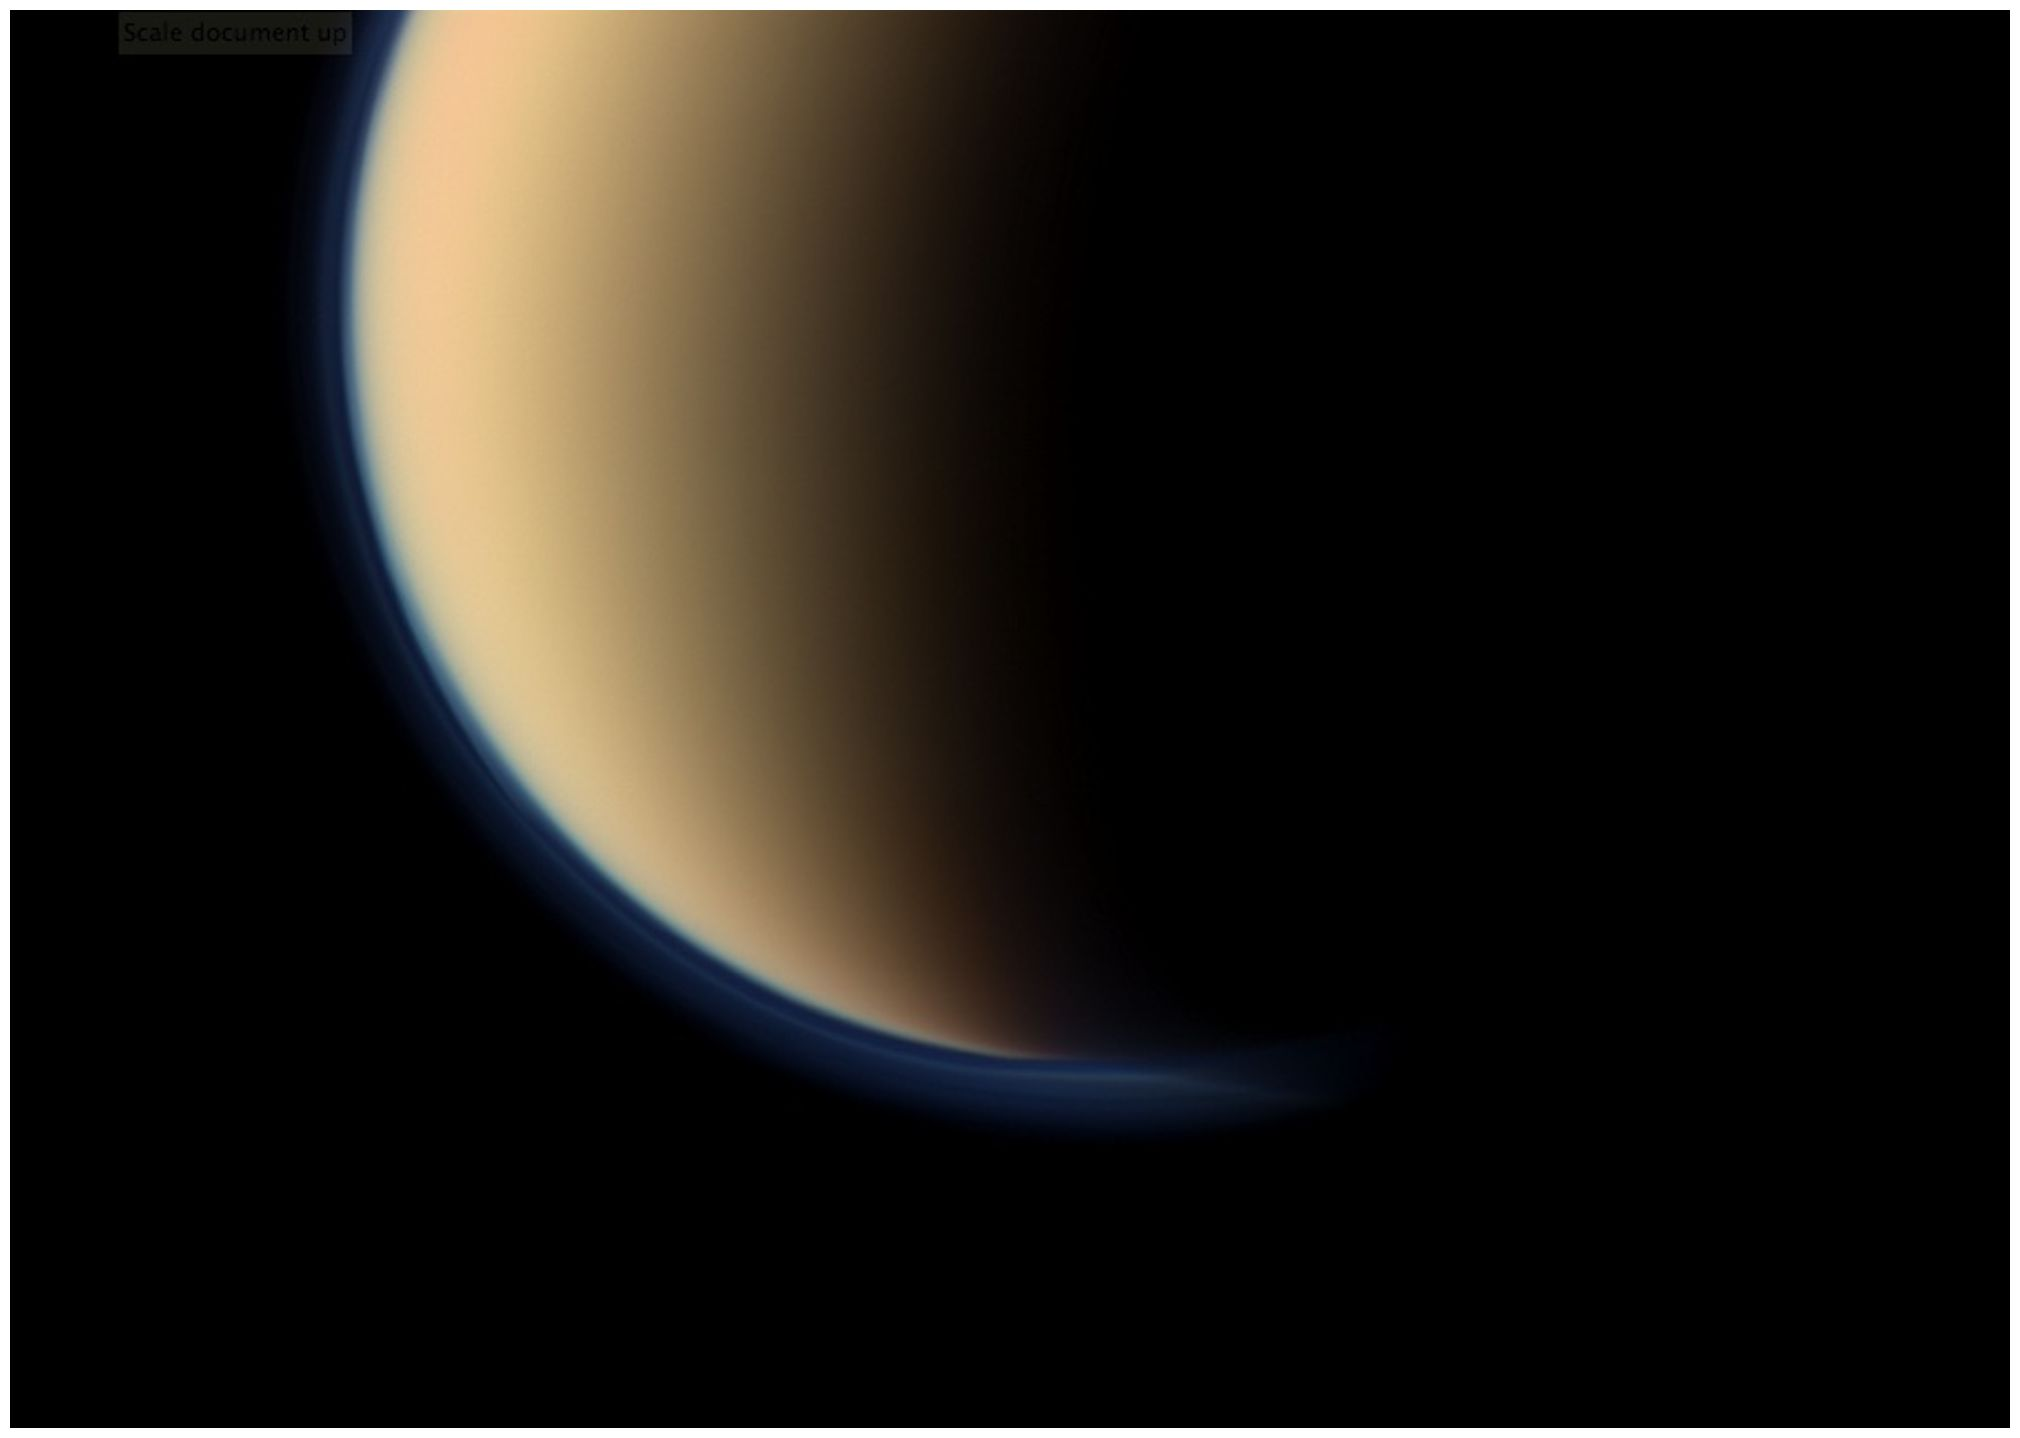 Saturn S Moon Titan May Be More Earth Like Than Thought